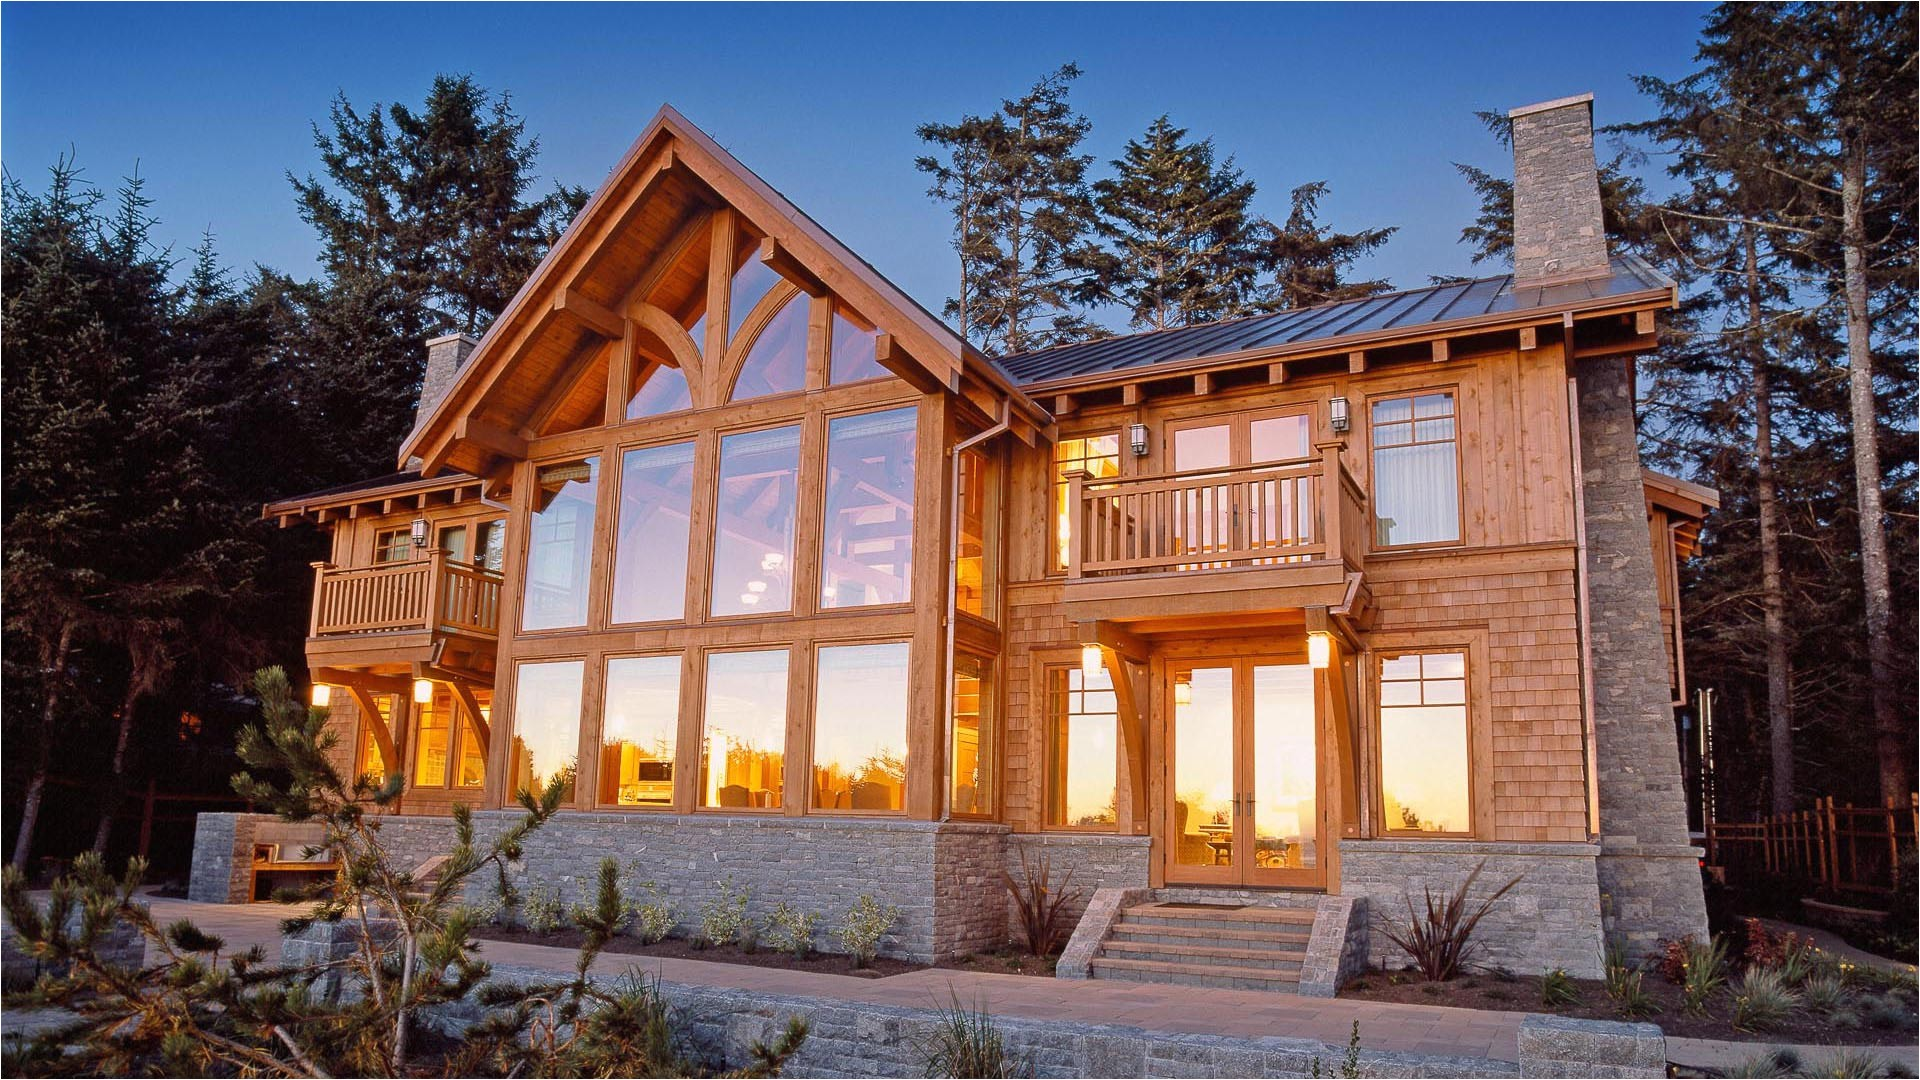 Canadian Timber Frame Home Plans Canadian Timber Frame House Plans